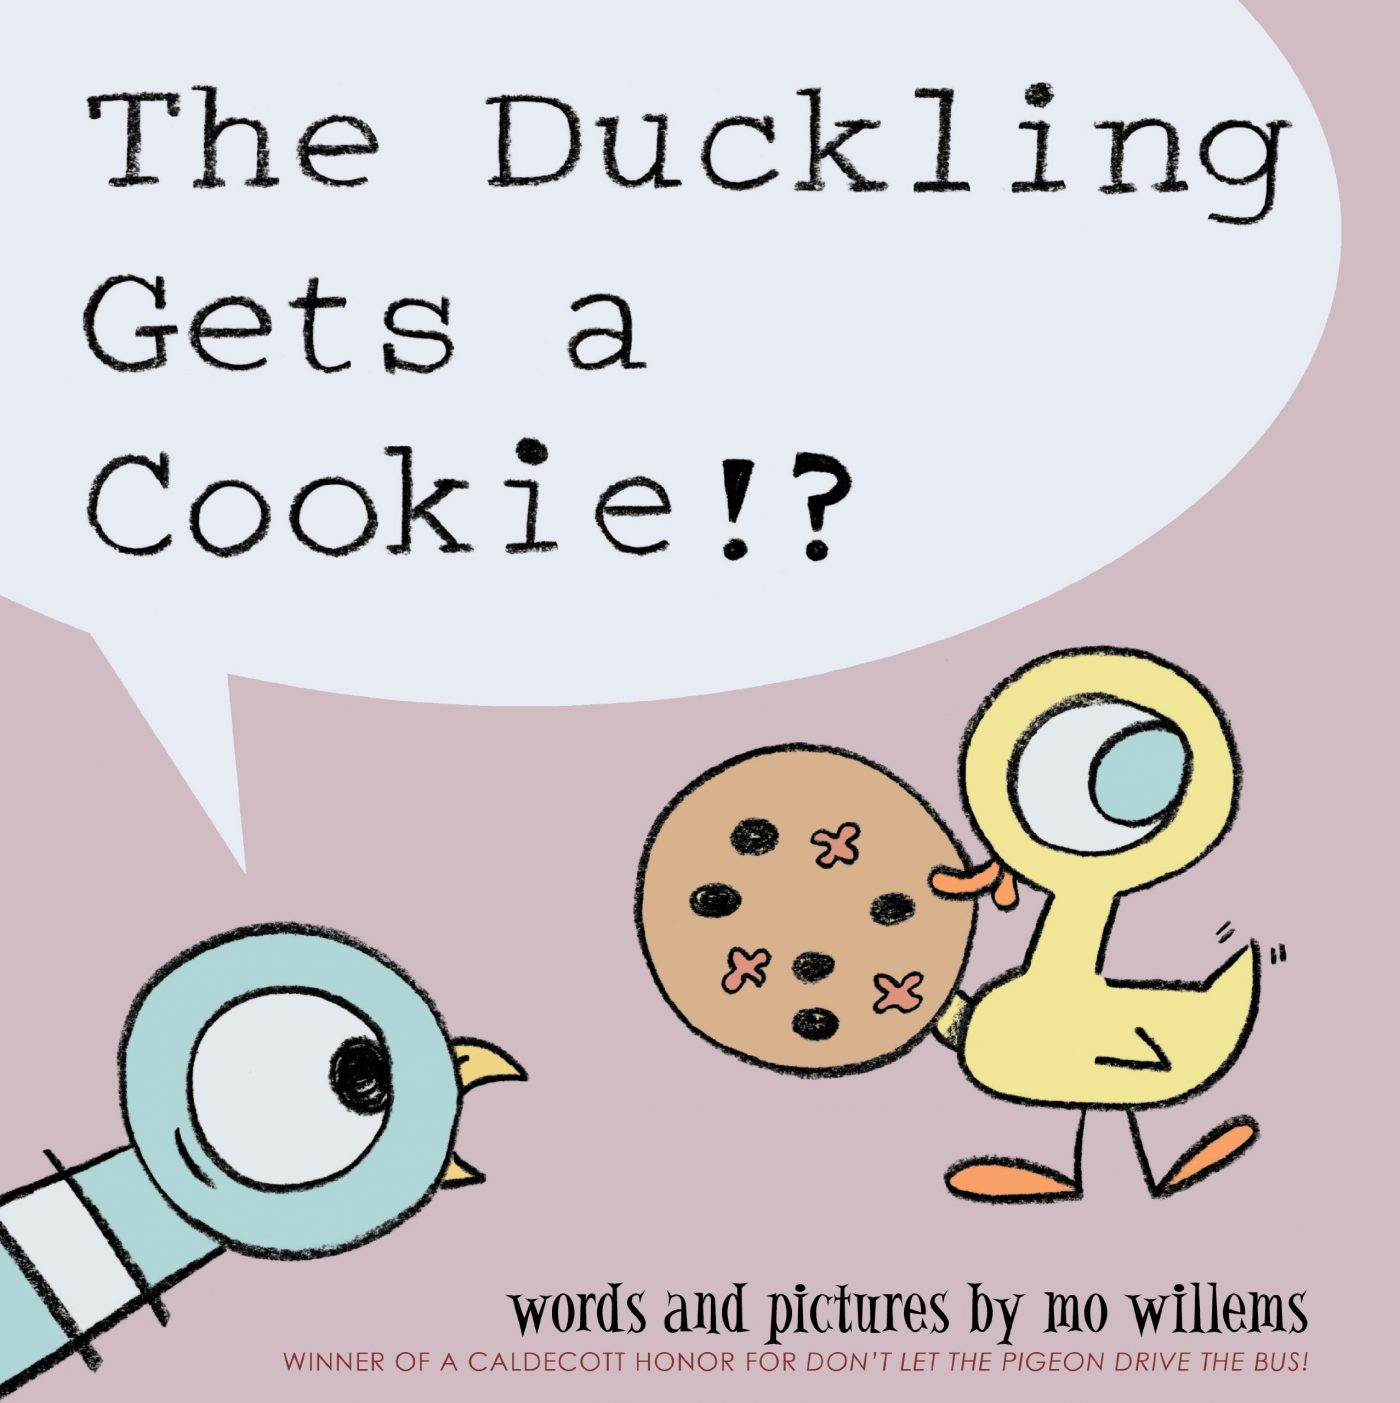 the-duckling-gets-a-cookie